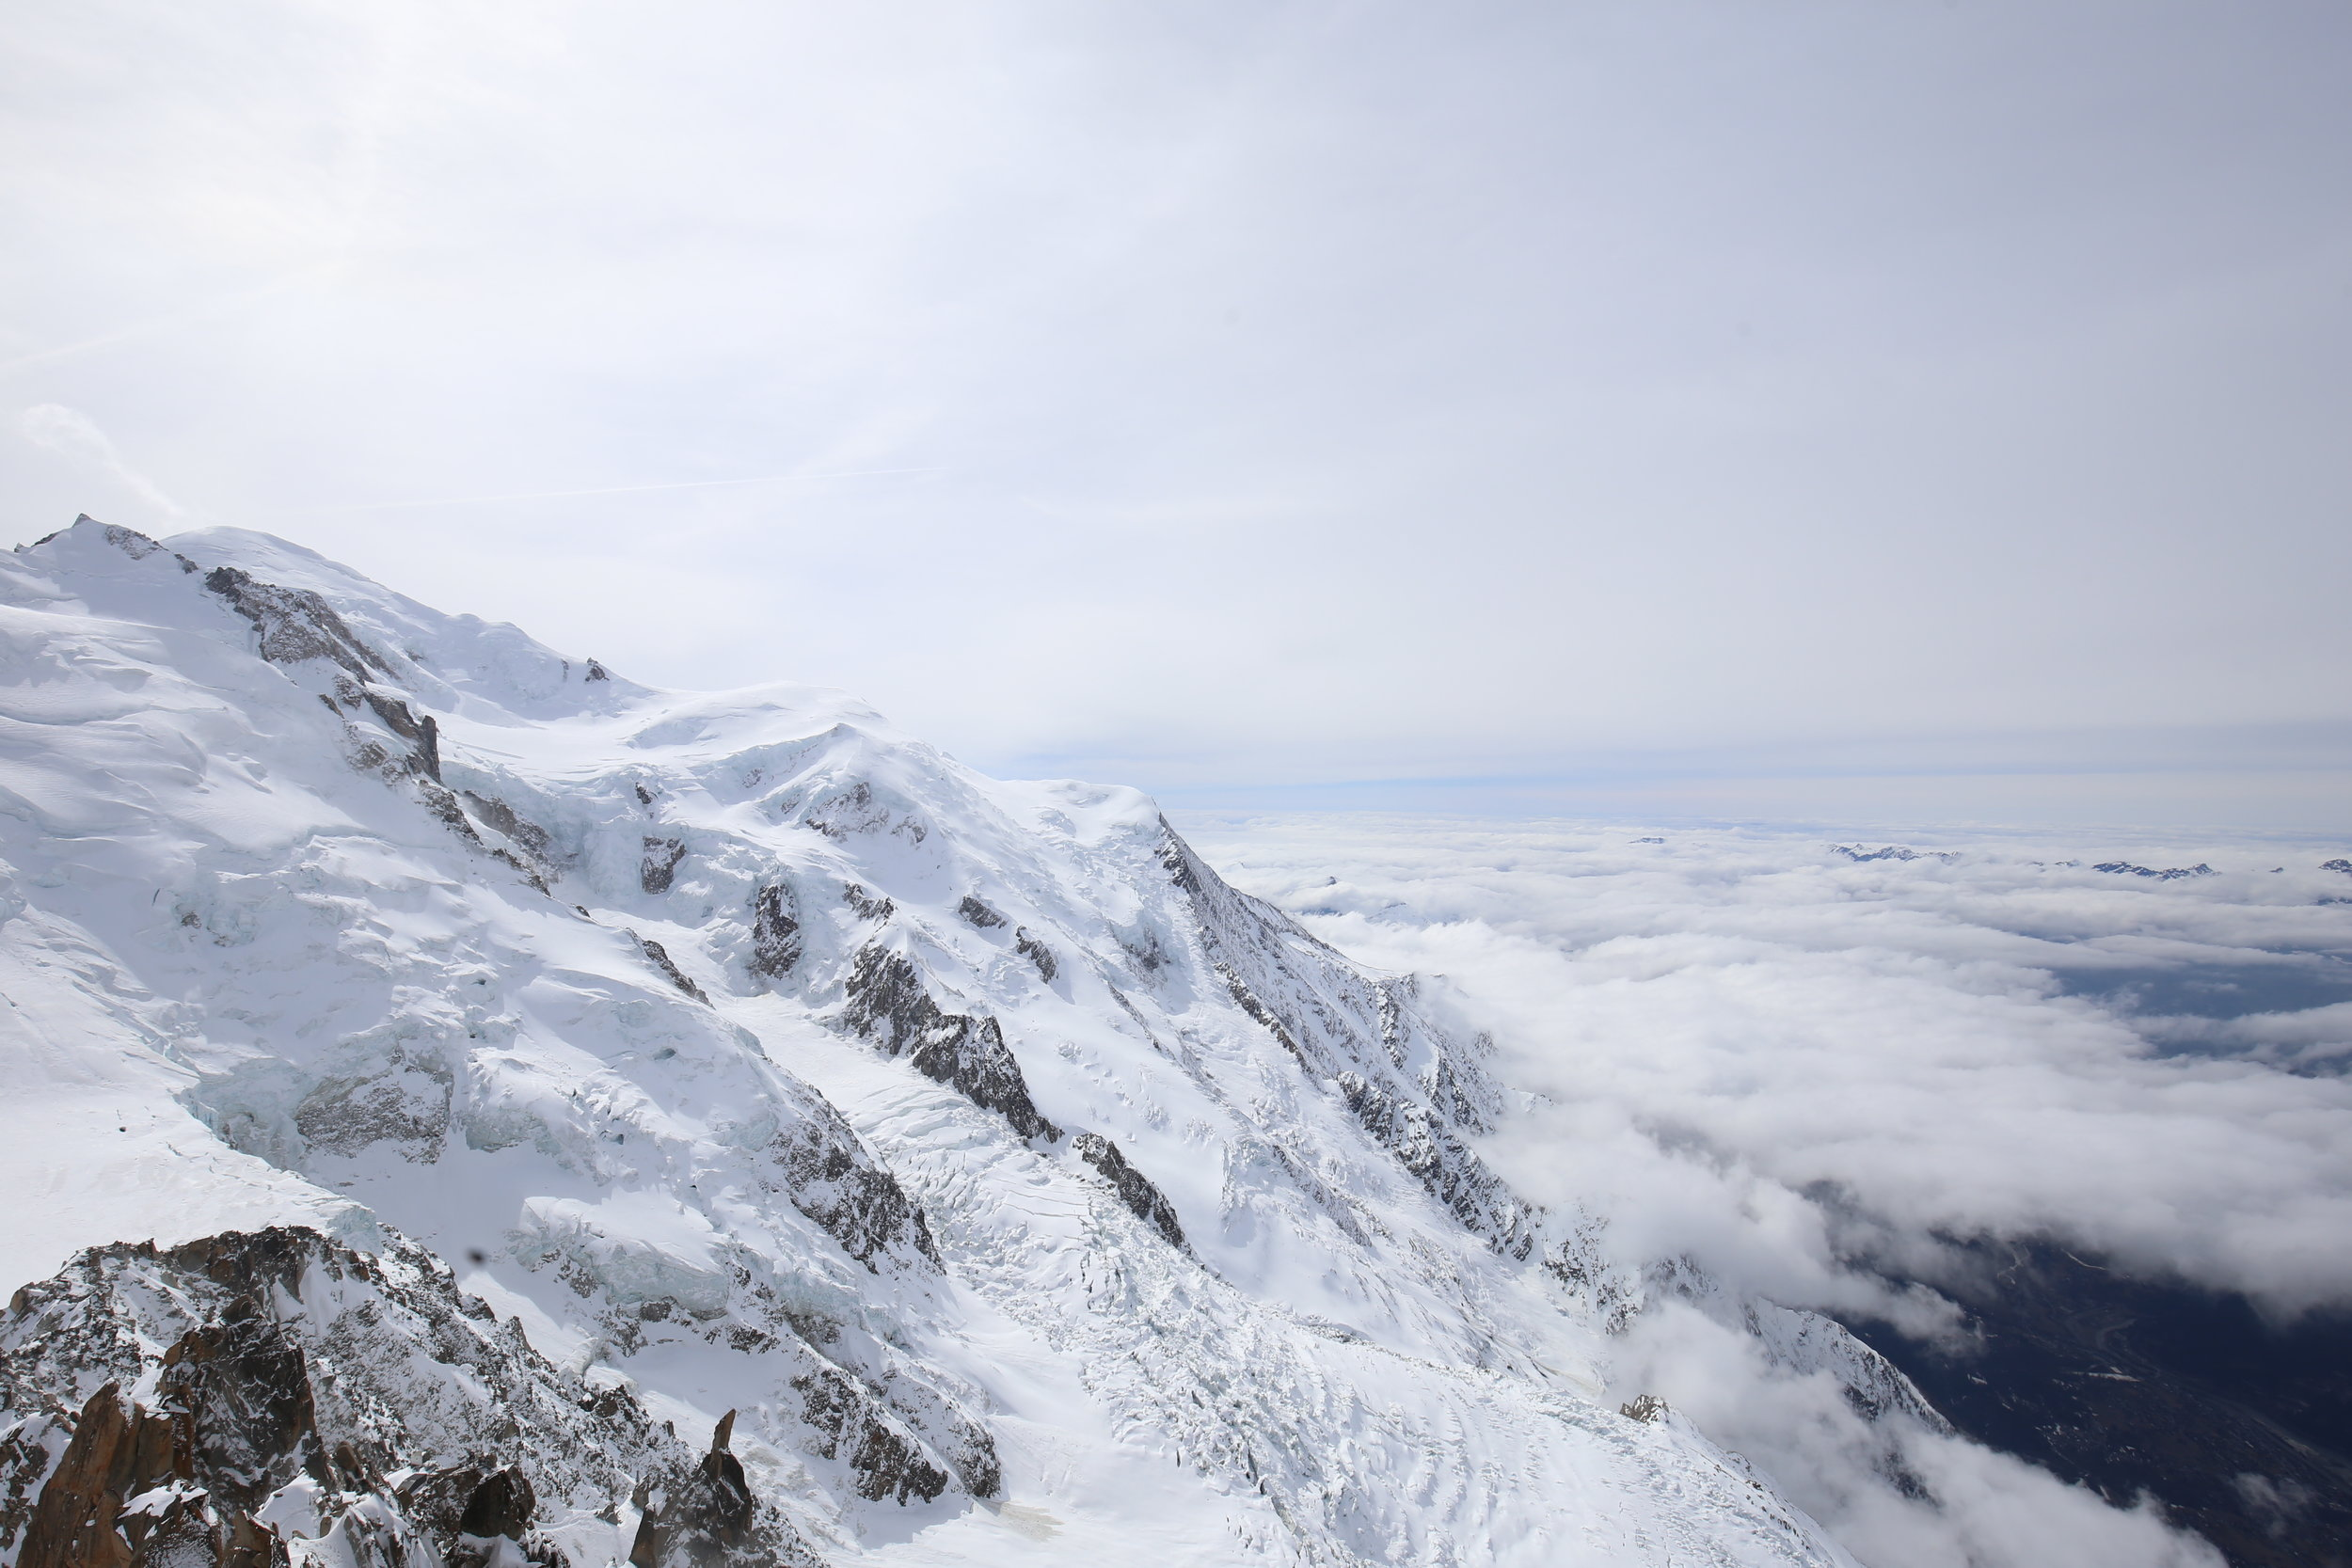 The view over Chamonix valley from the top of Mont Blanc Aiguille du Midi.